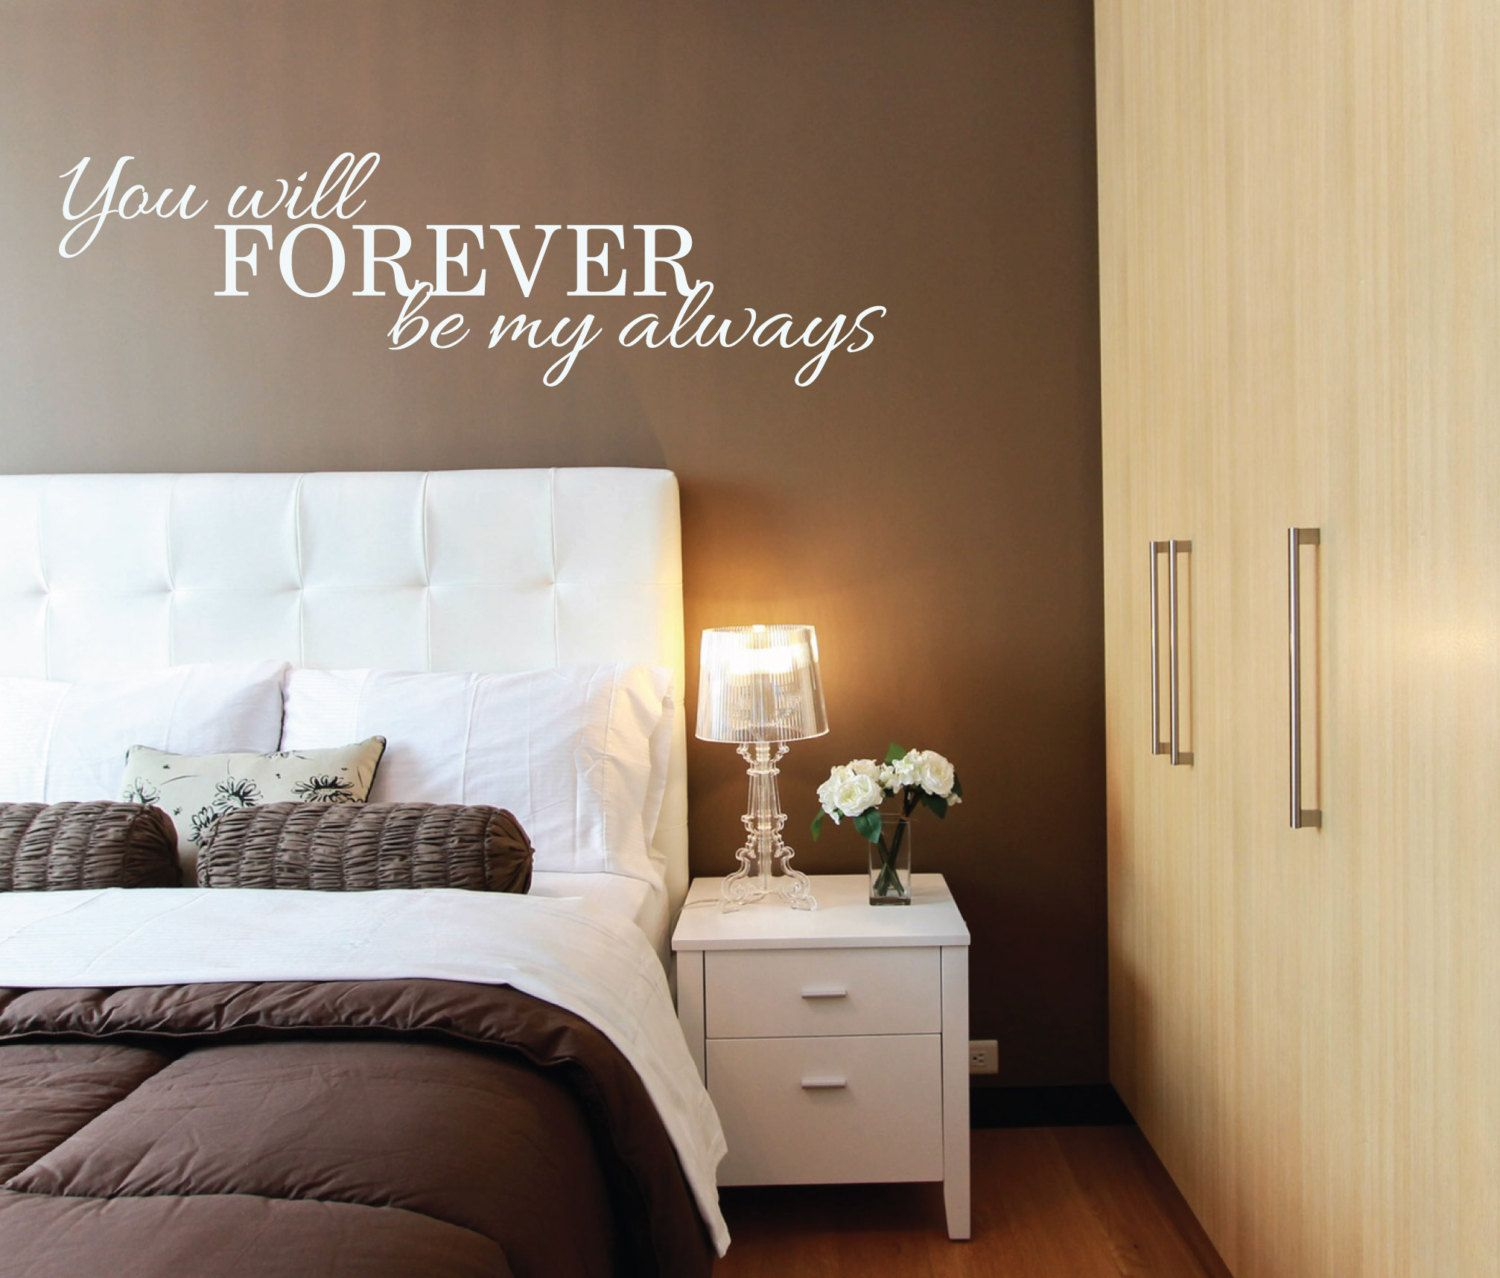 Over The Bed Decor above bed wall sticker - you will forever be my always l over bed